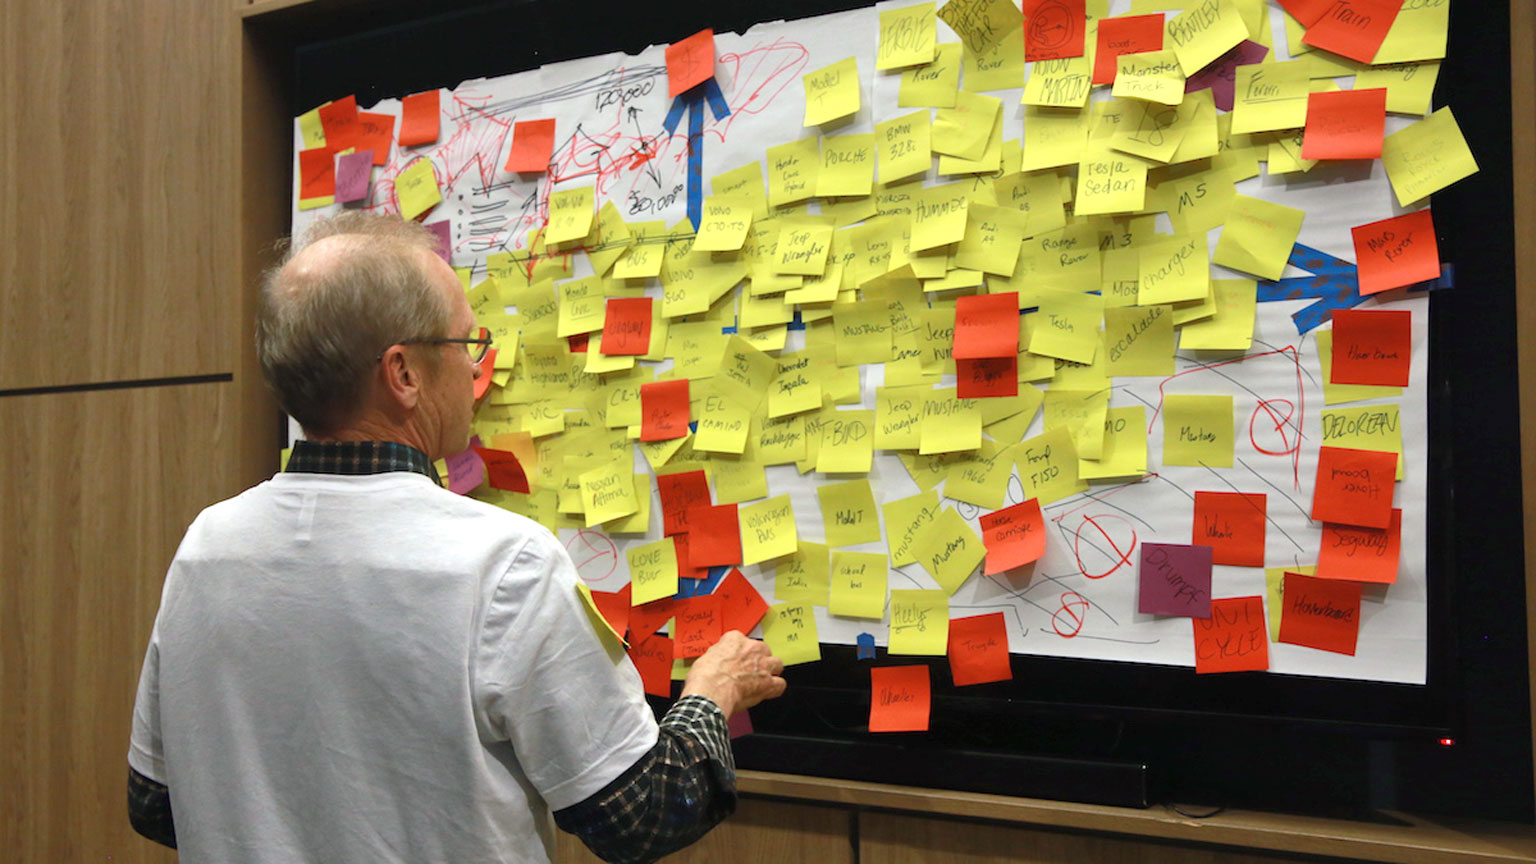 A professor scans over a wall papered with concepts on sticky notes - the result of a class in the Design Bloc course on Design Thinking